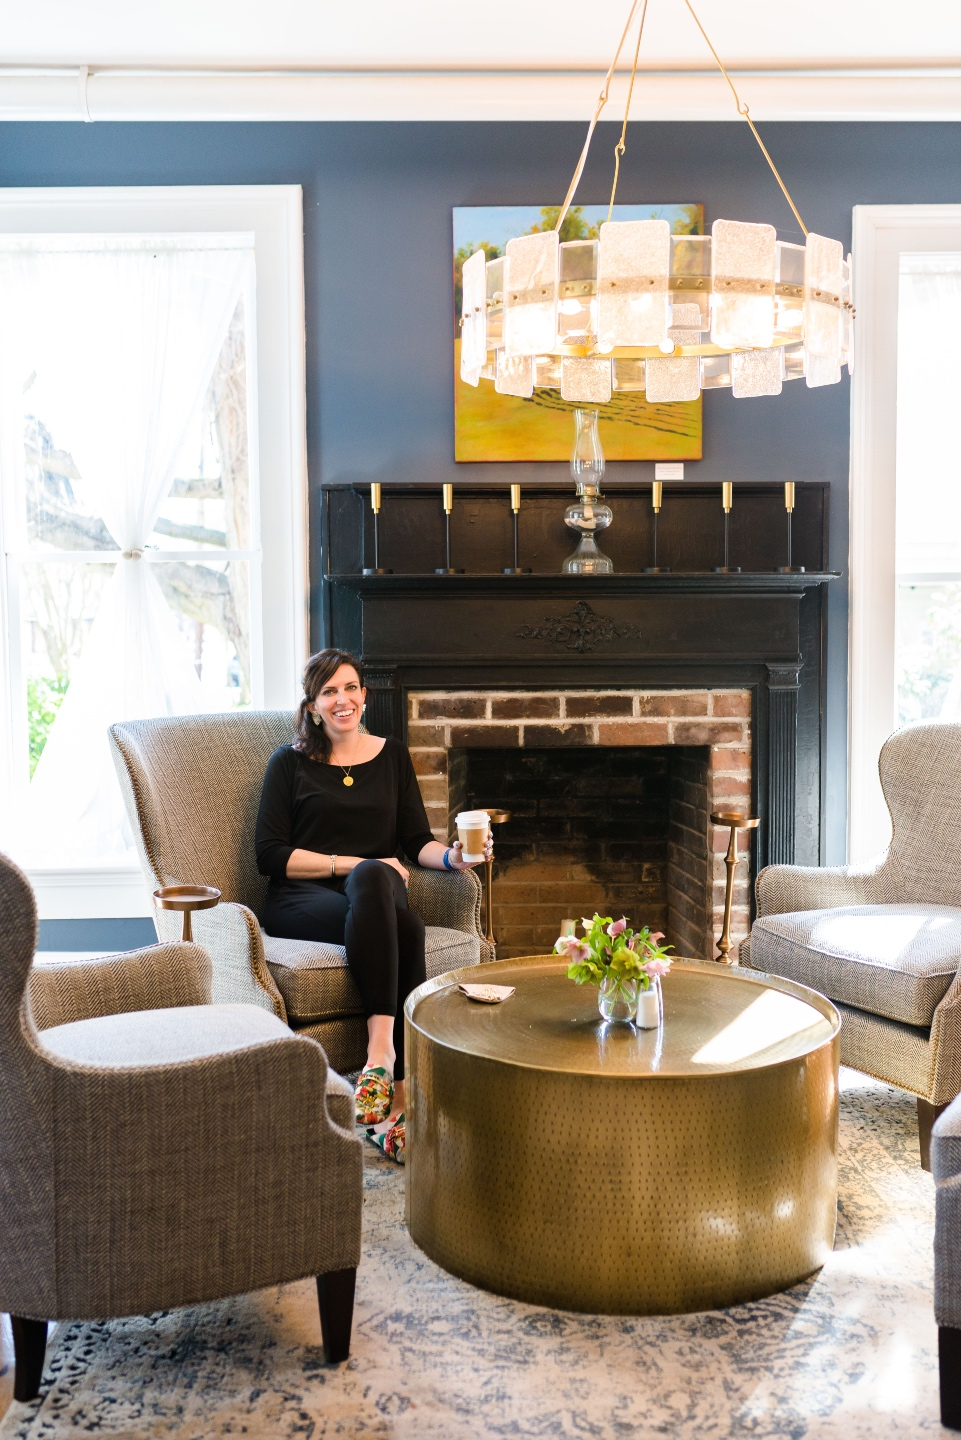 Places to Stay: The Colonial Inn in Hillsborough NC - I'm Fixin' To - @imfixintoblog |The Colonial Inn Hillsborough NC by popular NC travel blog, I'm Fixin' To: image of a sitting area with a blue wall, brick fireplace, round gold coffee table, and grey fabric wingback chairs.